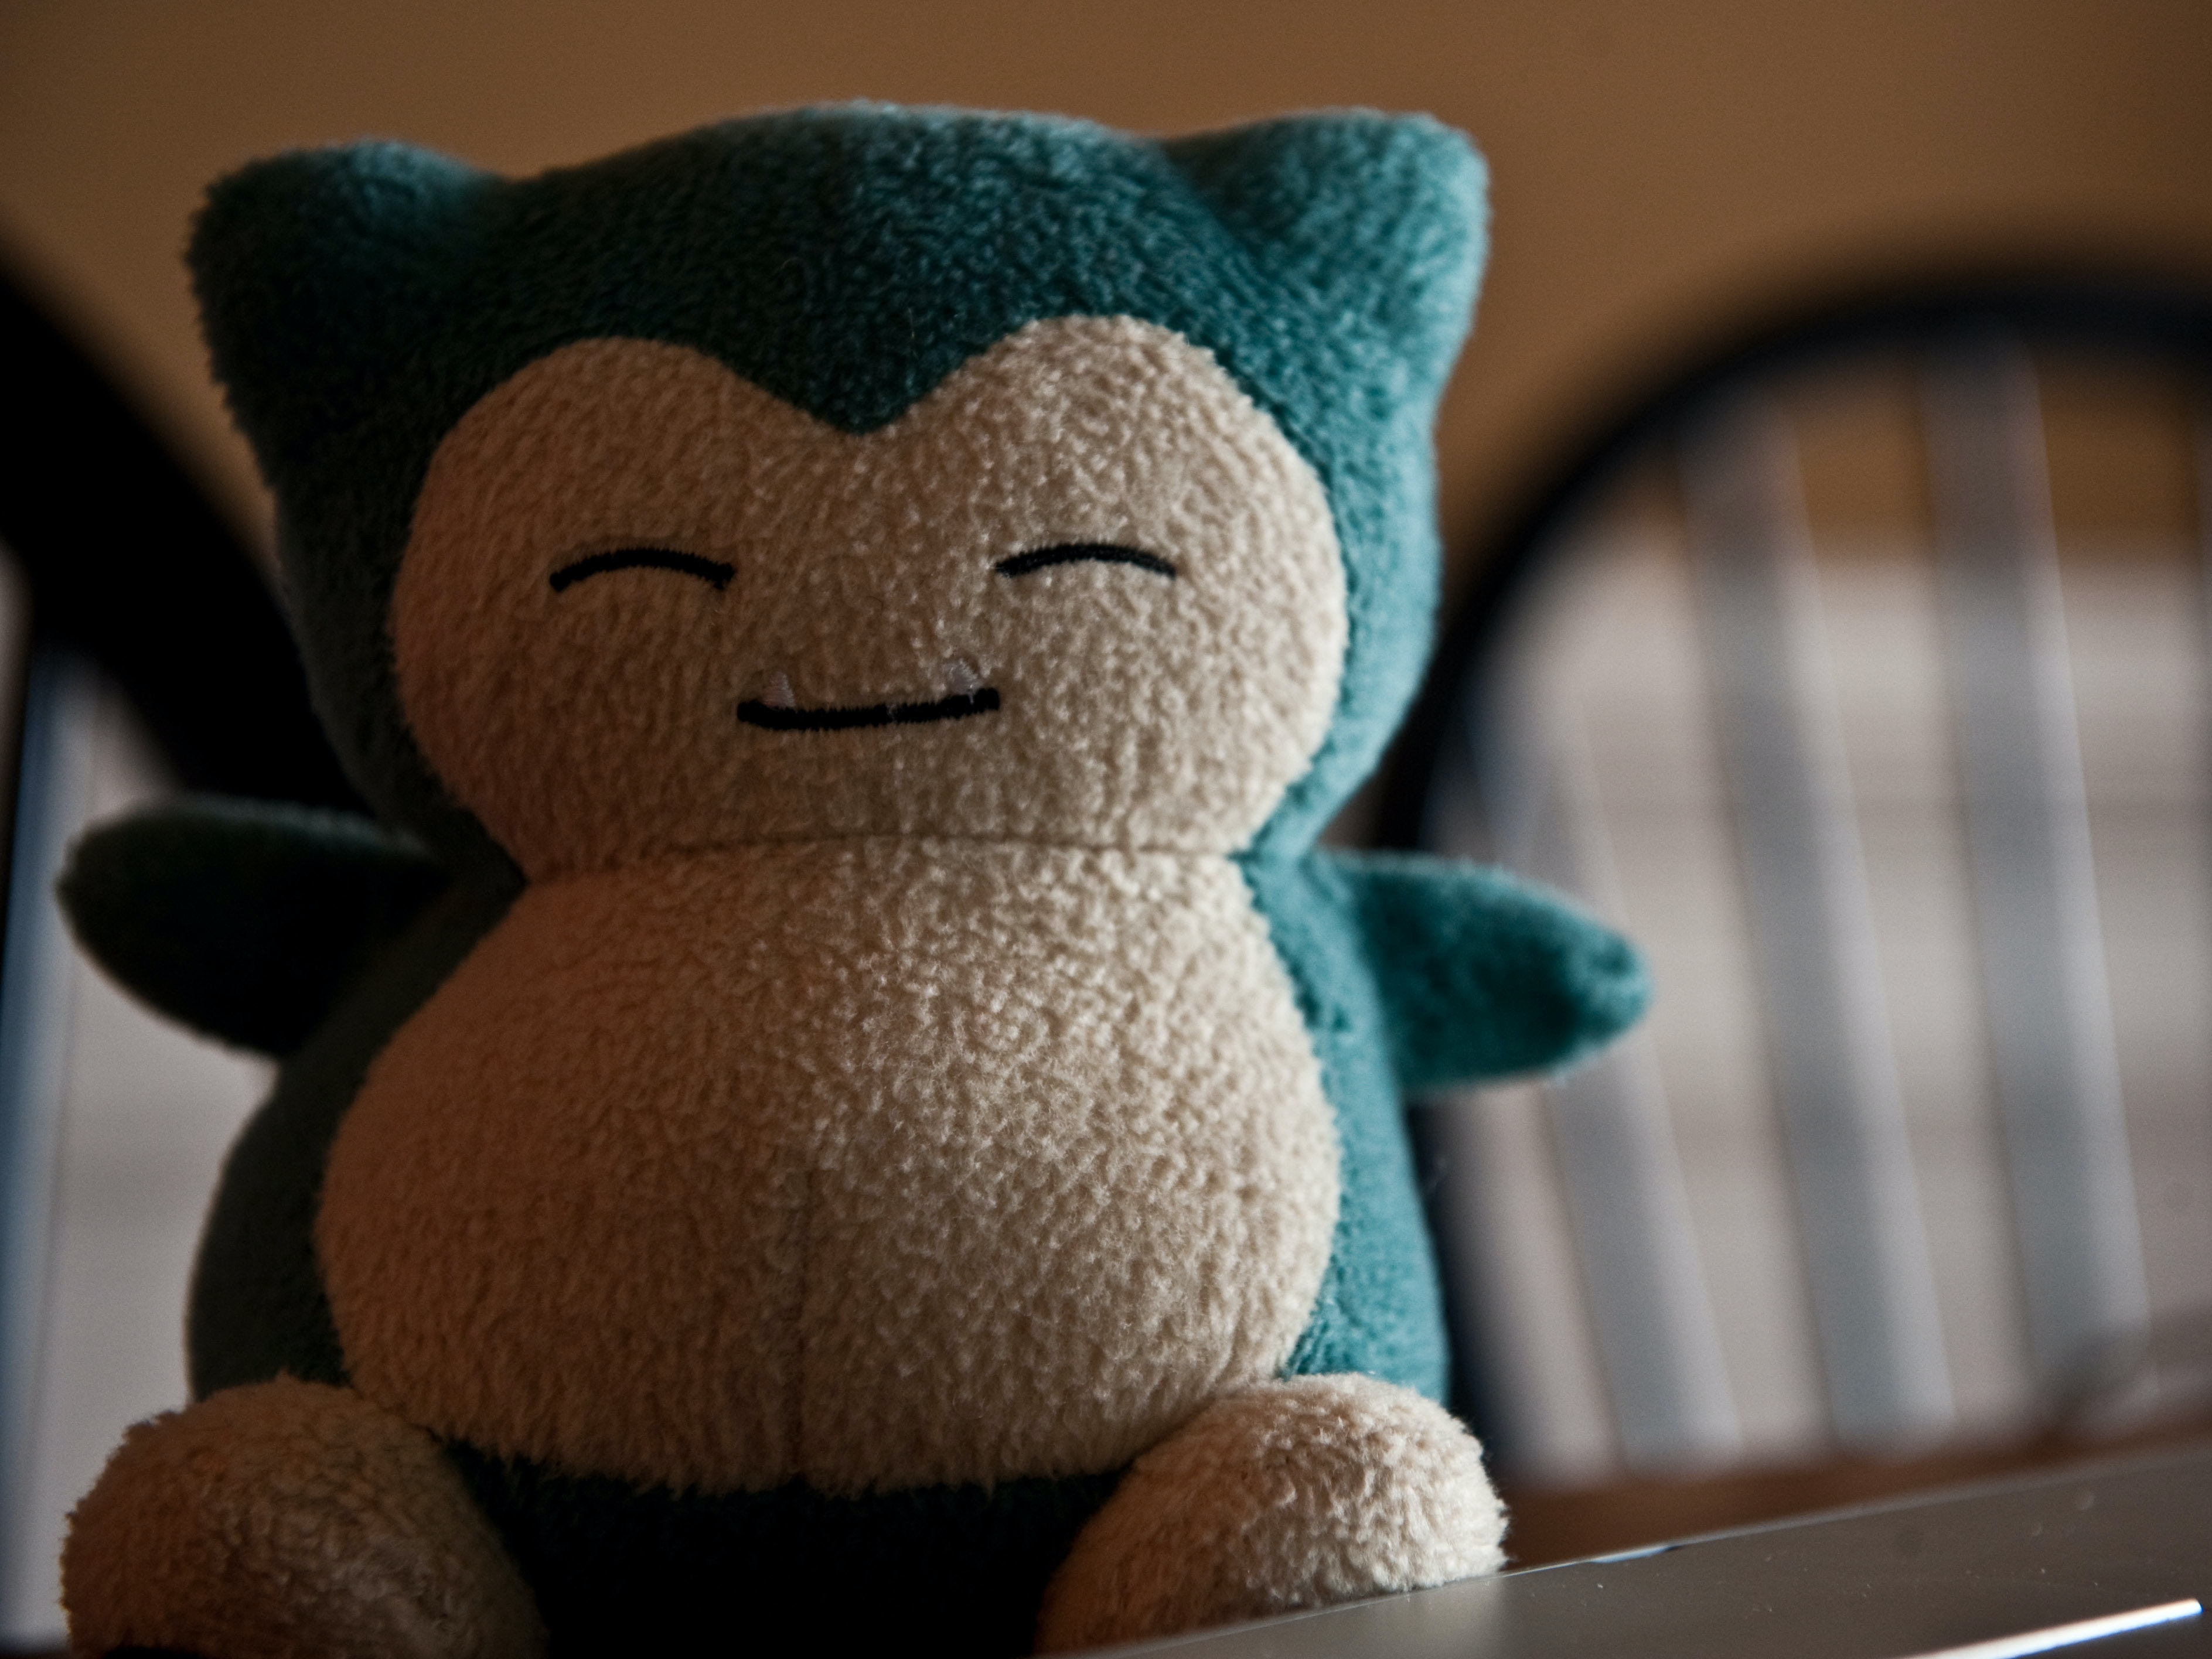 An immensely fluffy representation of Snorlax.